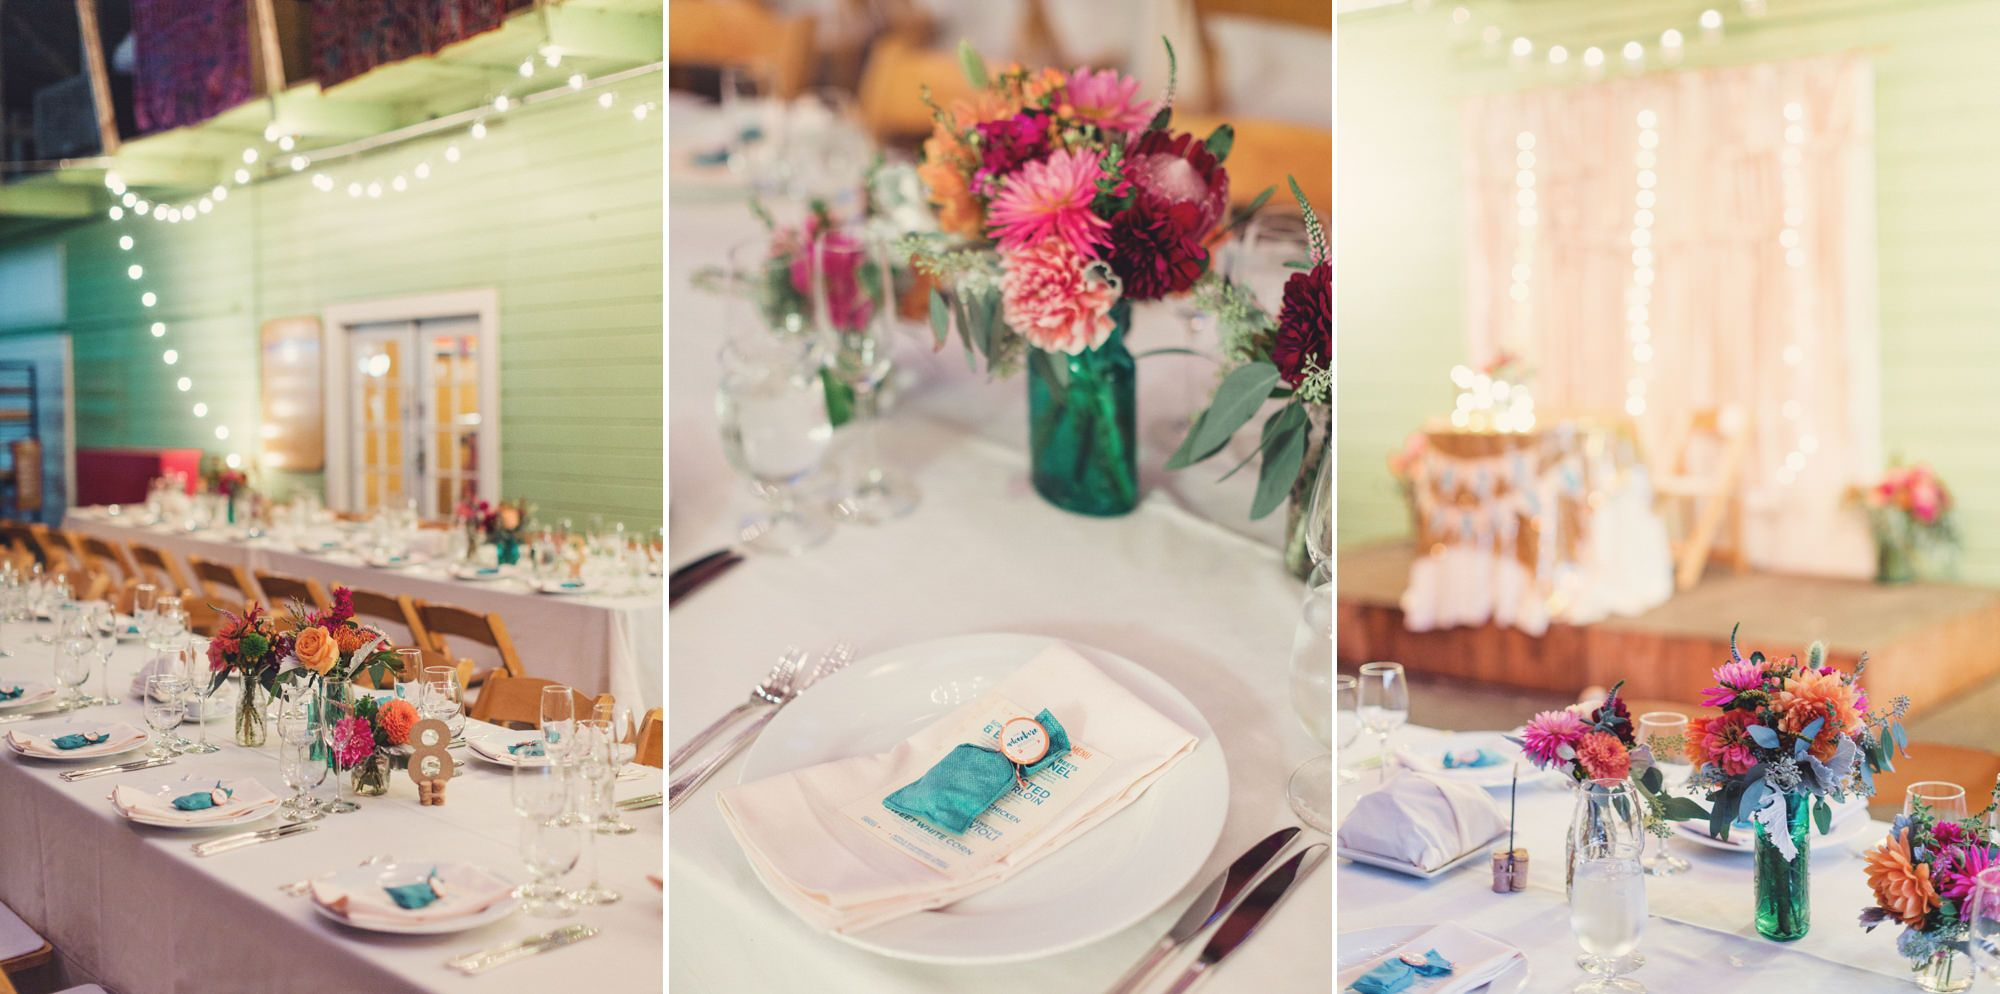 Pink and maroon wedding decor  Vibrant guest centerpieces featuring mixed blue glass vases and